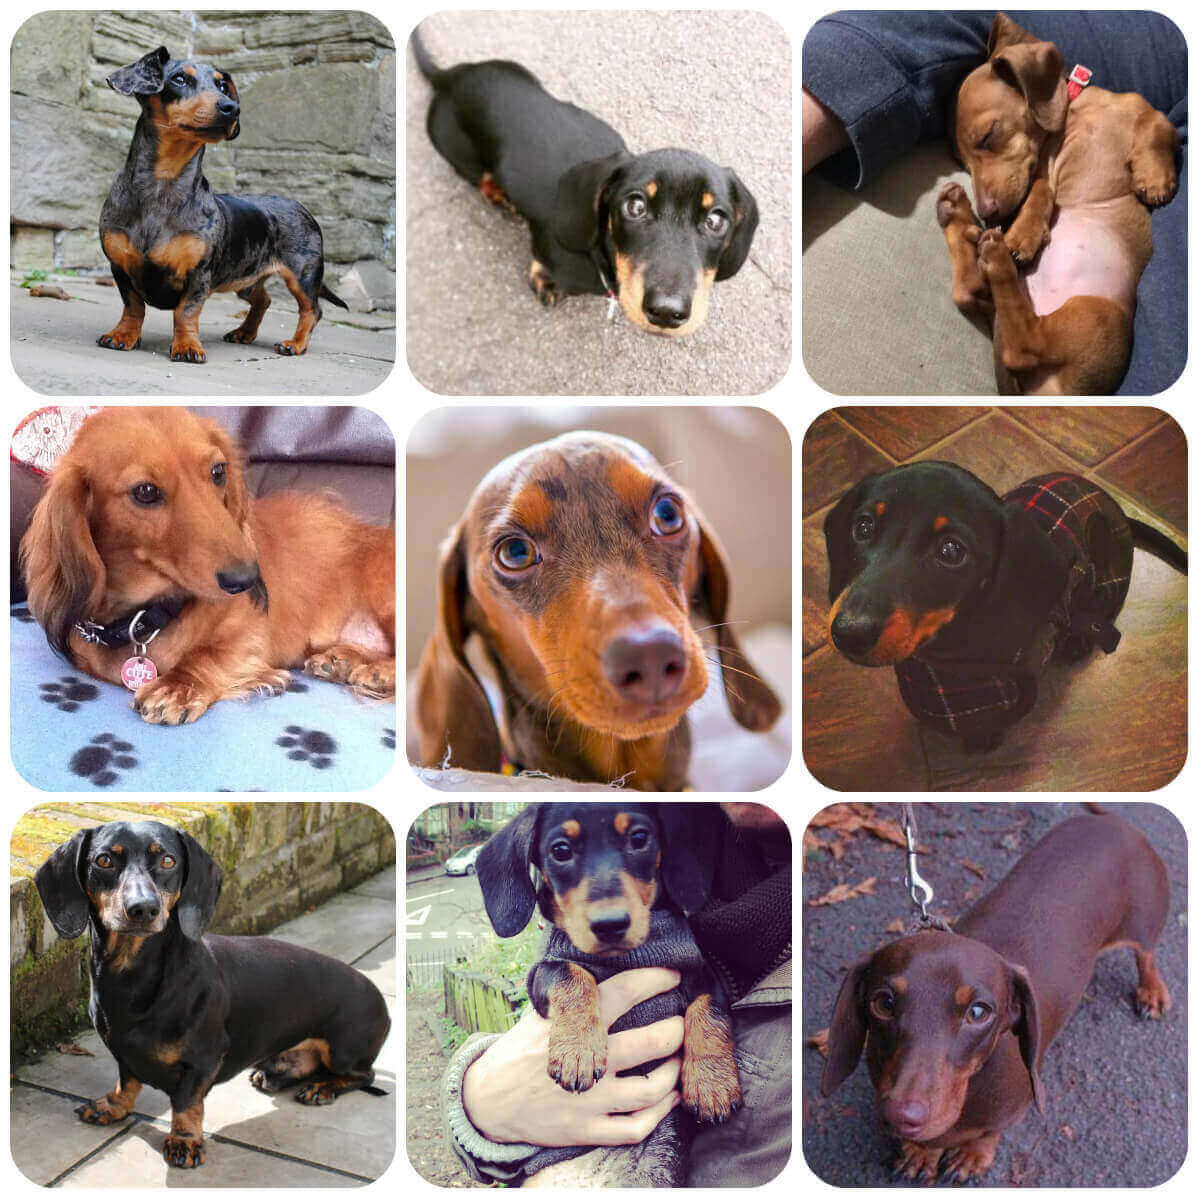 Dachshund collage, part of BorrowMyDoggy's guide to dog breeds.